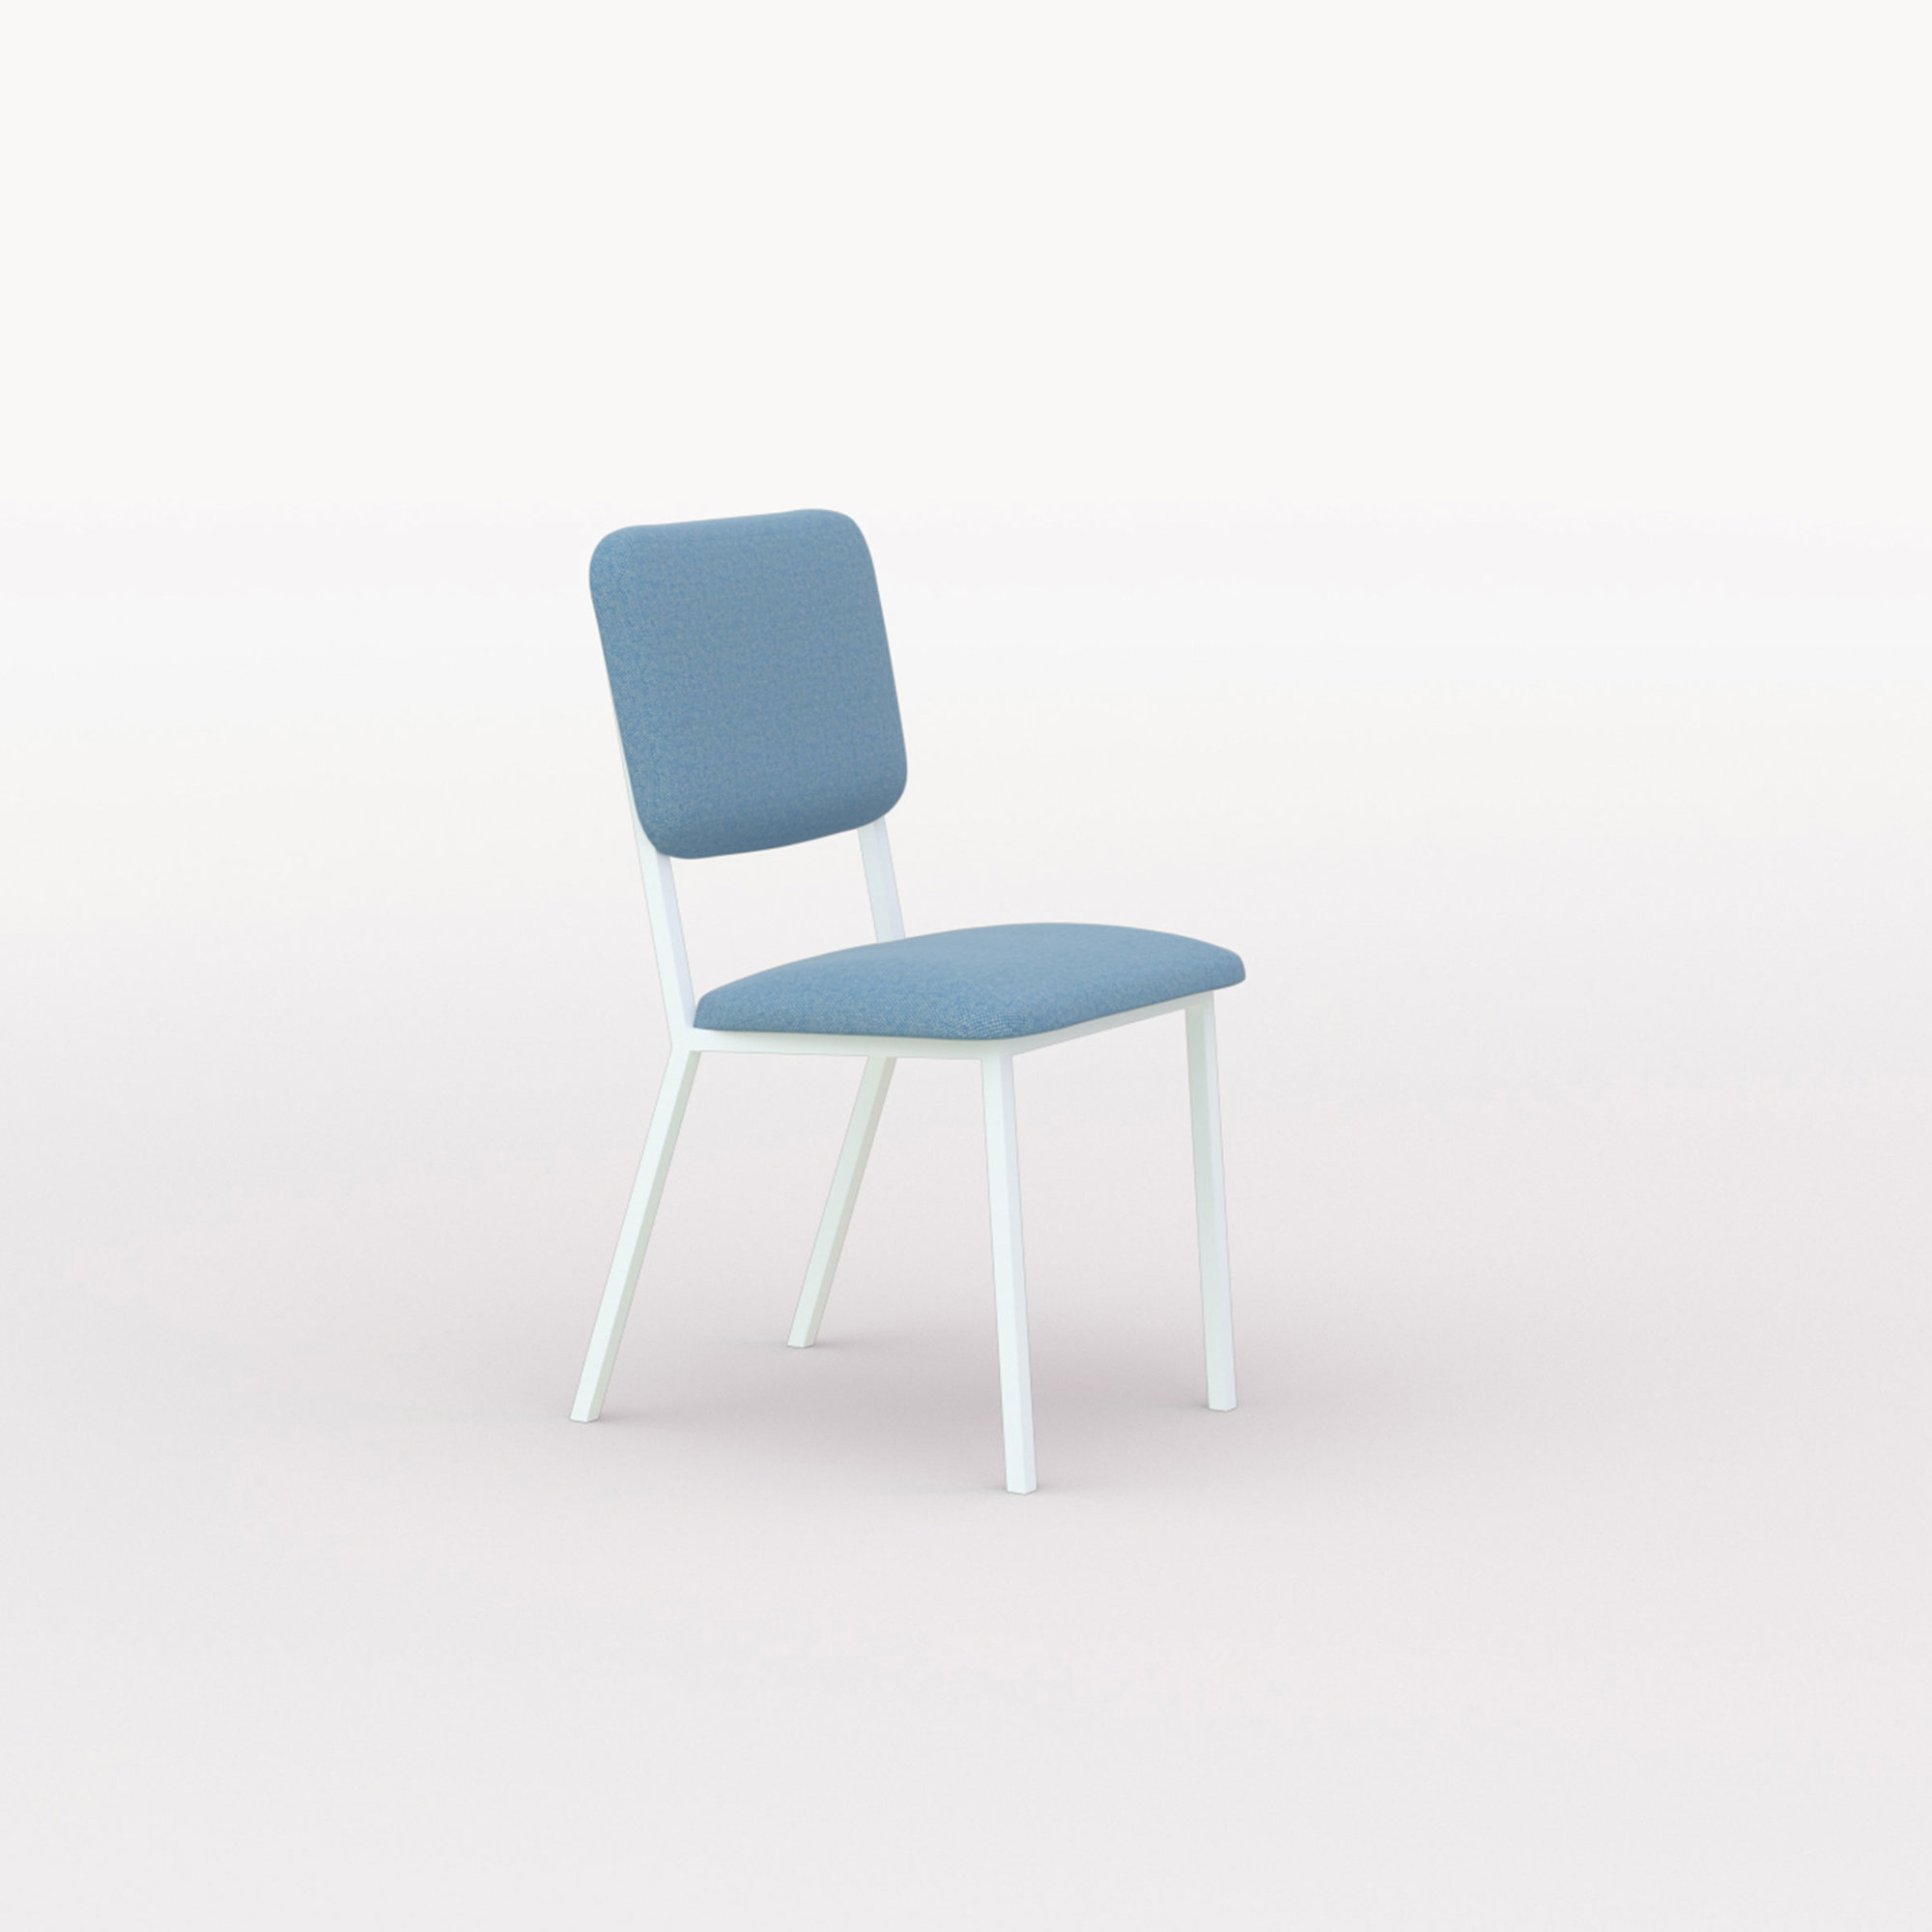 Design eetkamerstoel | Co Chair without armrest hallingdal65 840 | Studio HENK | Listing_image